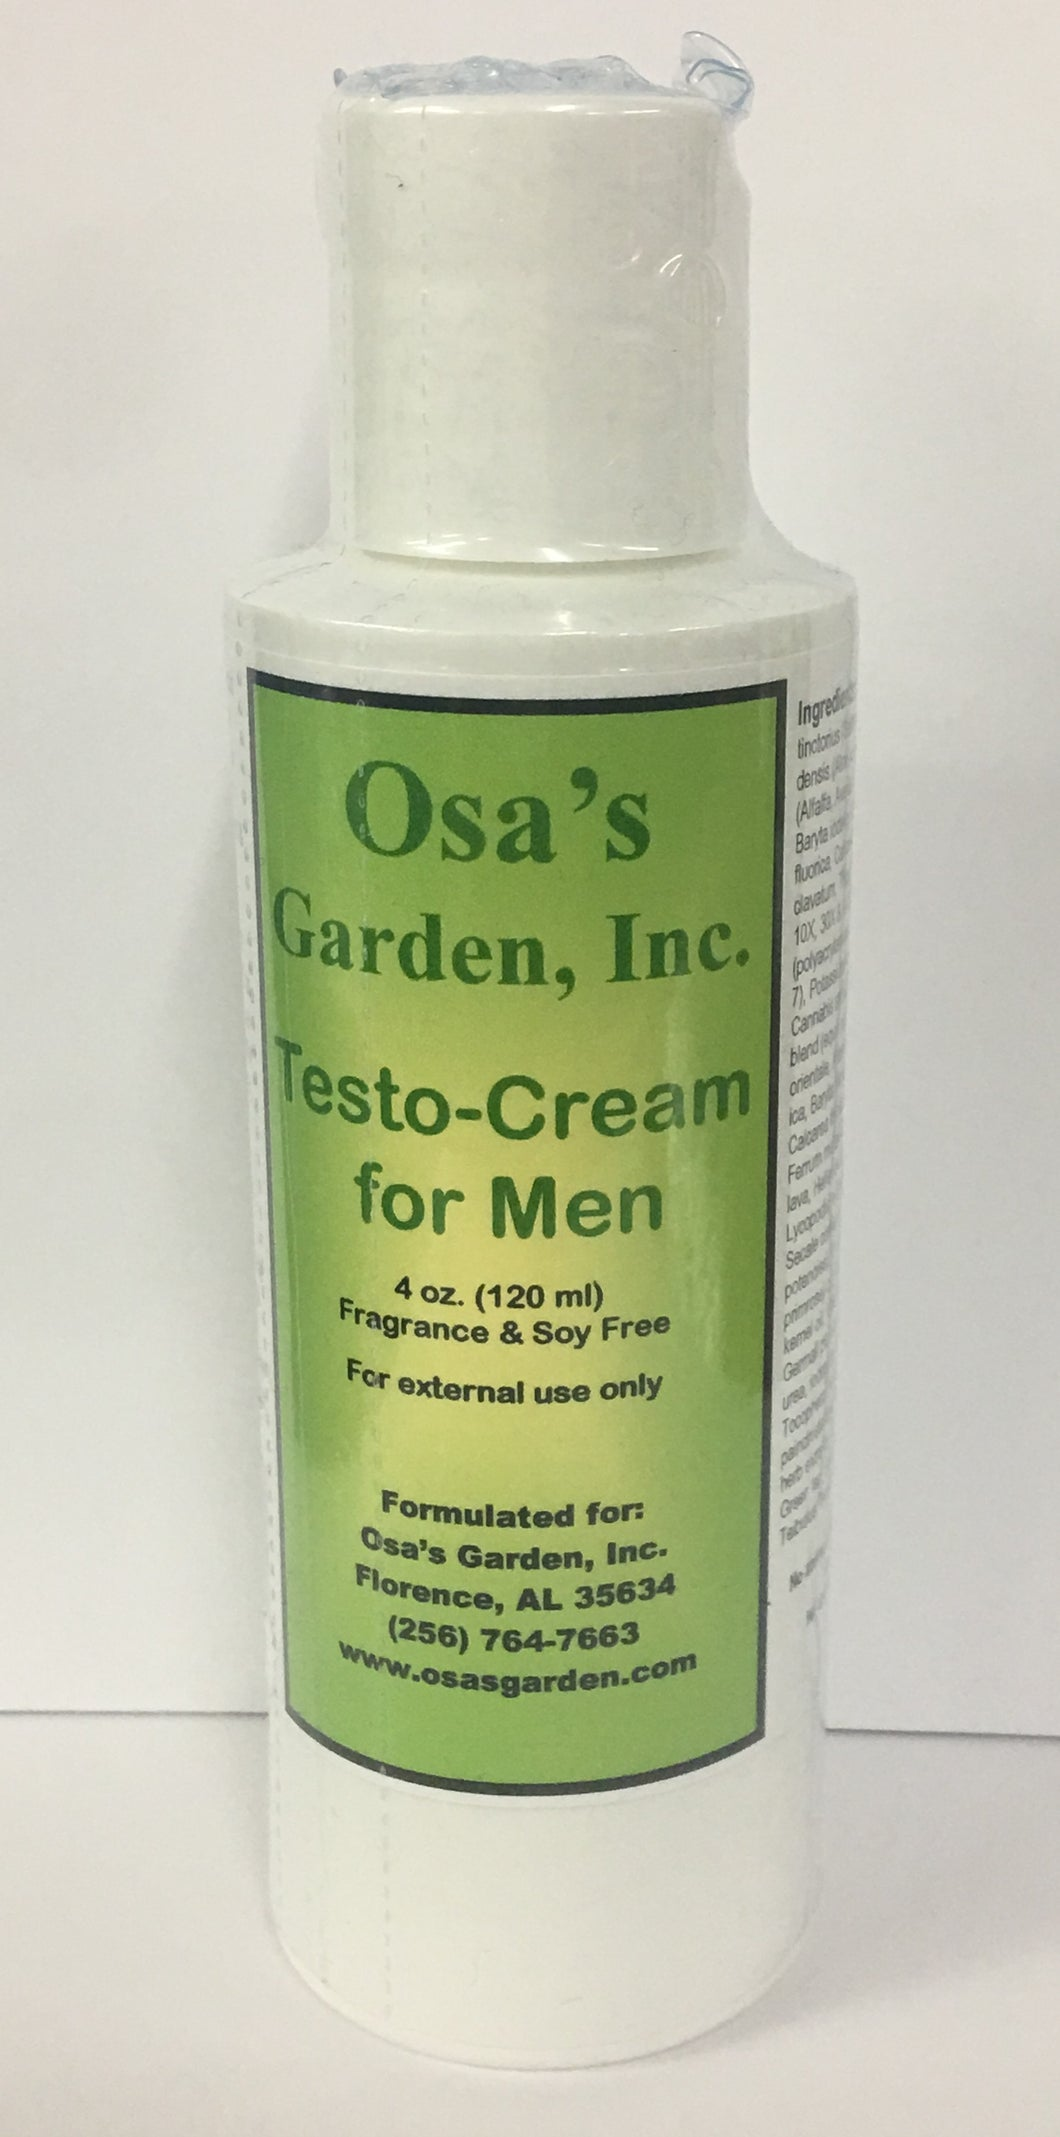 Testo-Cream for Men